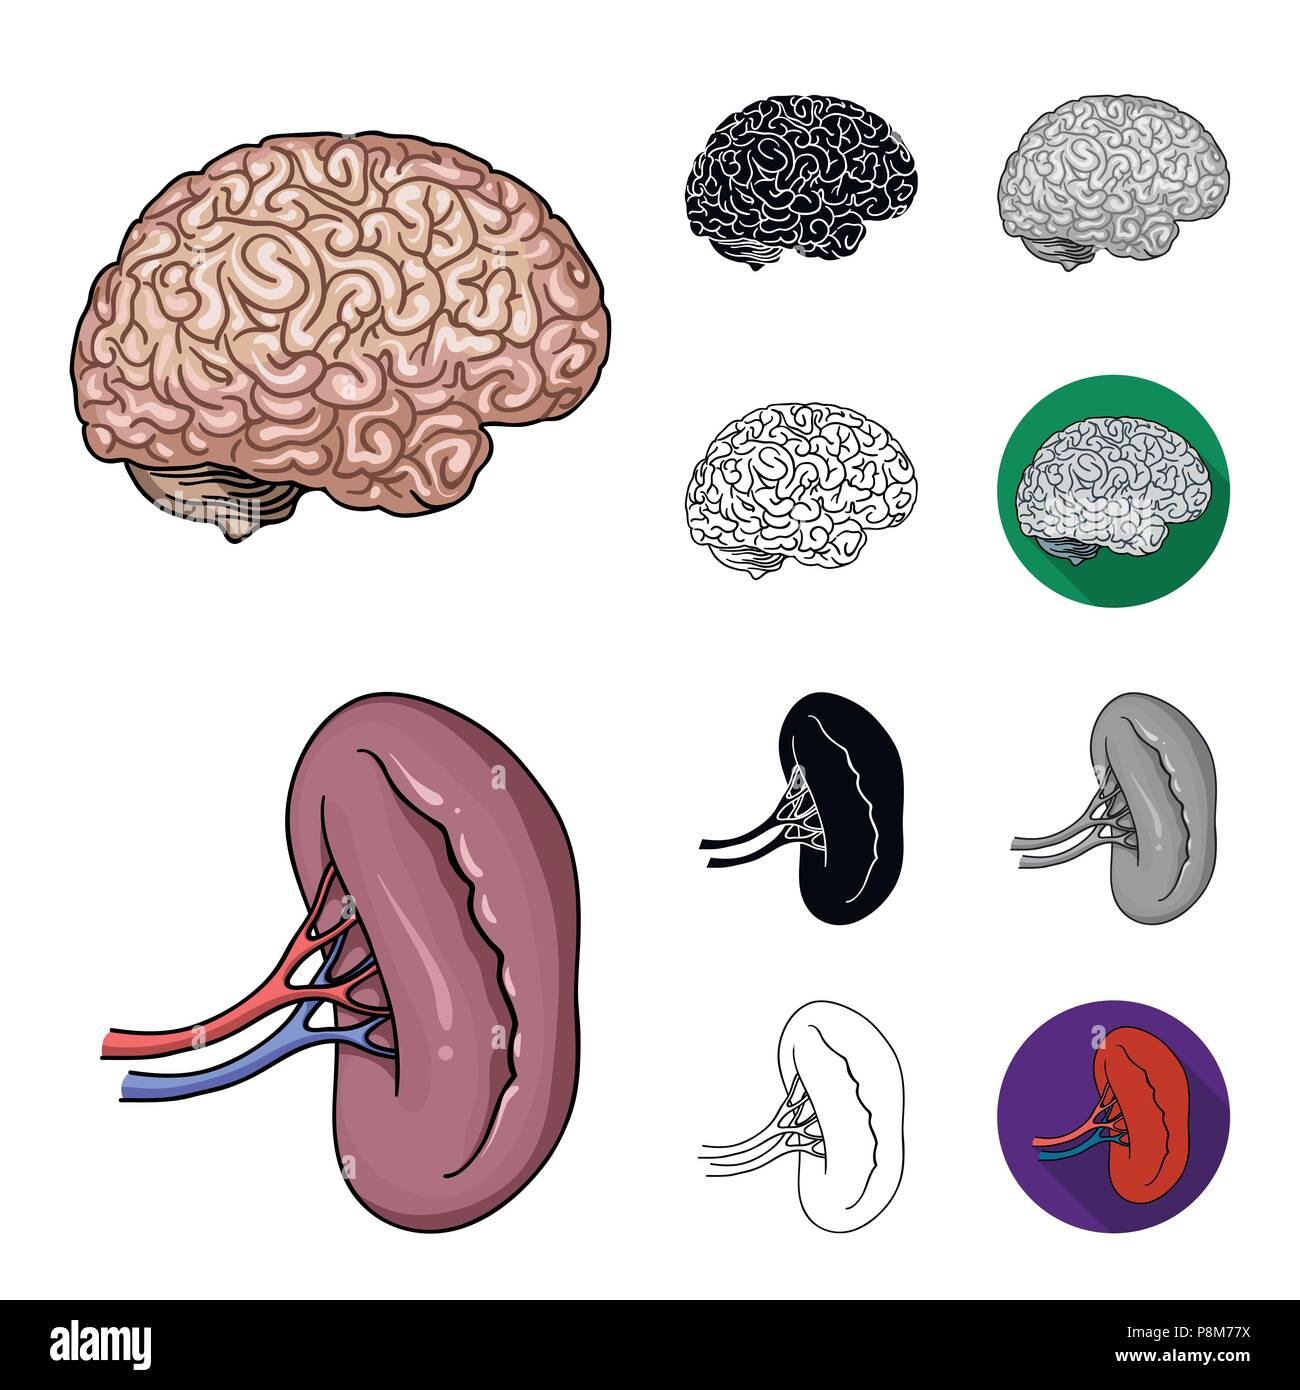 Internal Organs Icons Set Cartoon Stockfotos & Internal Organs Icons ...